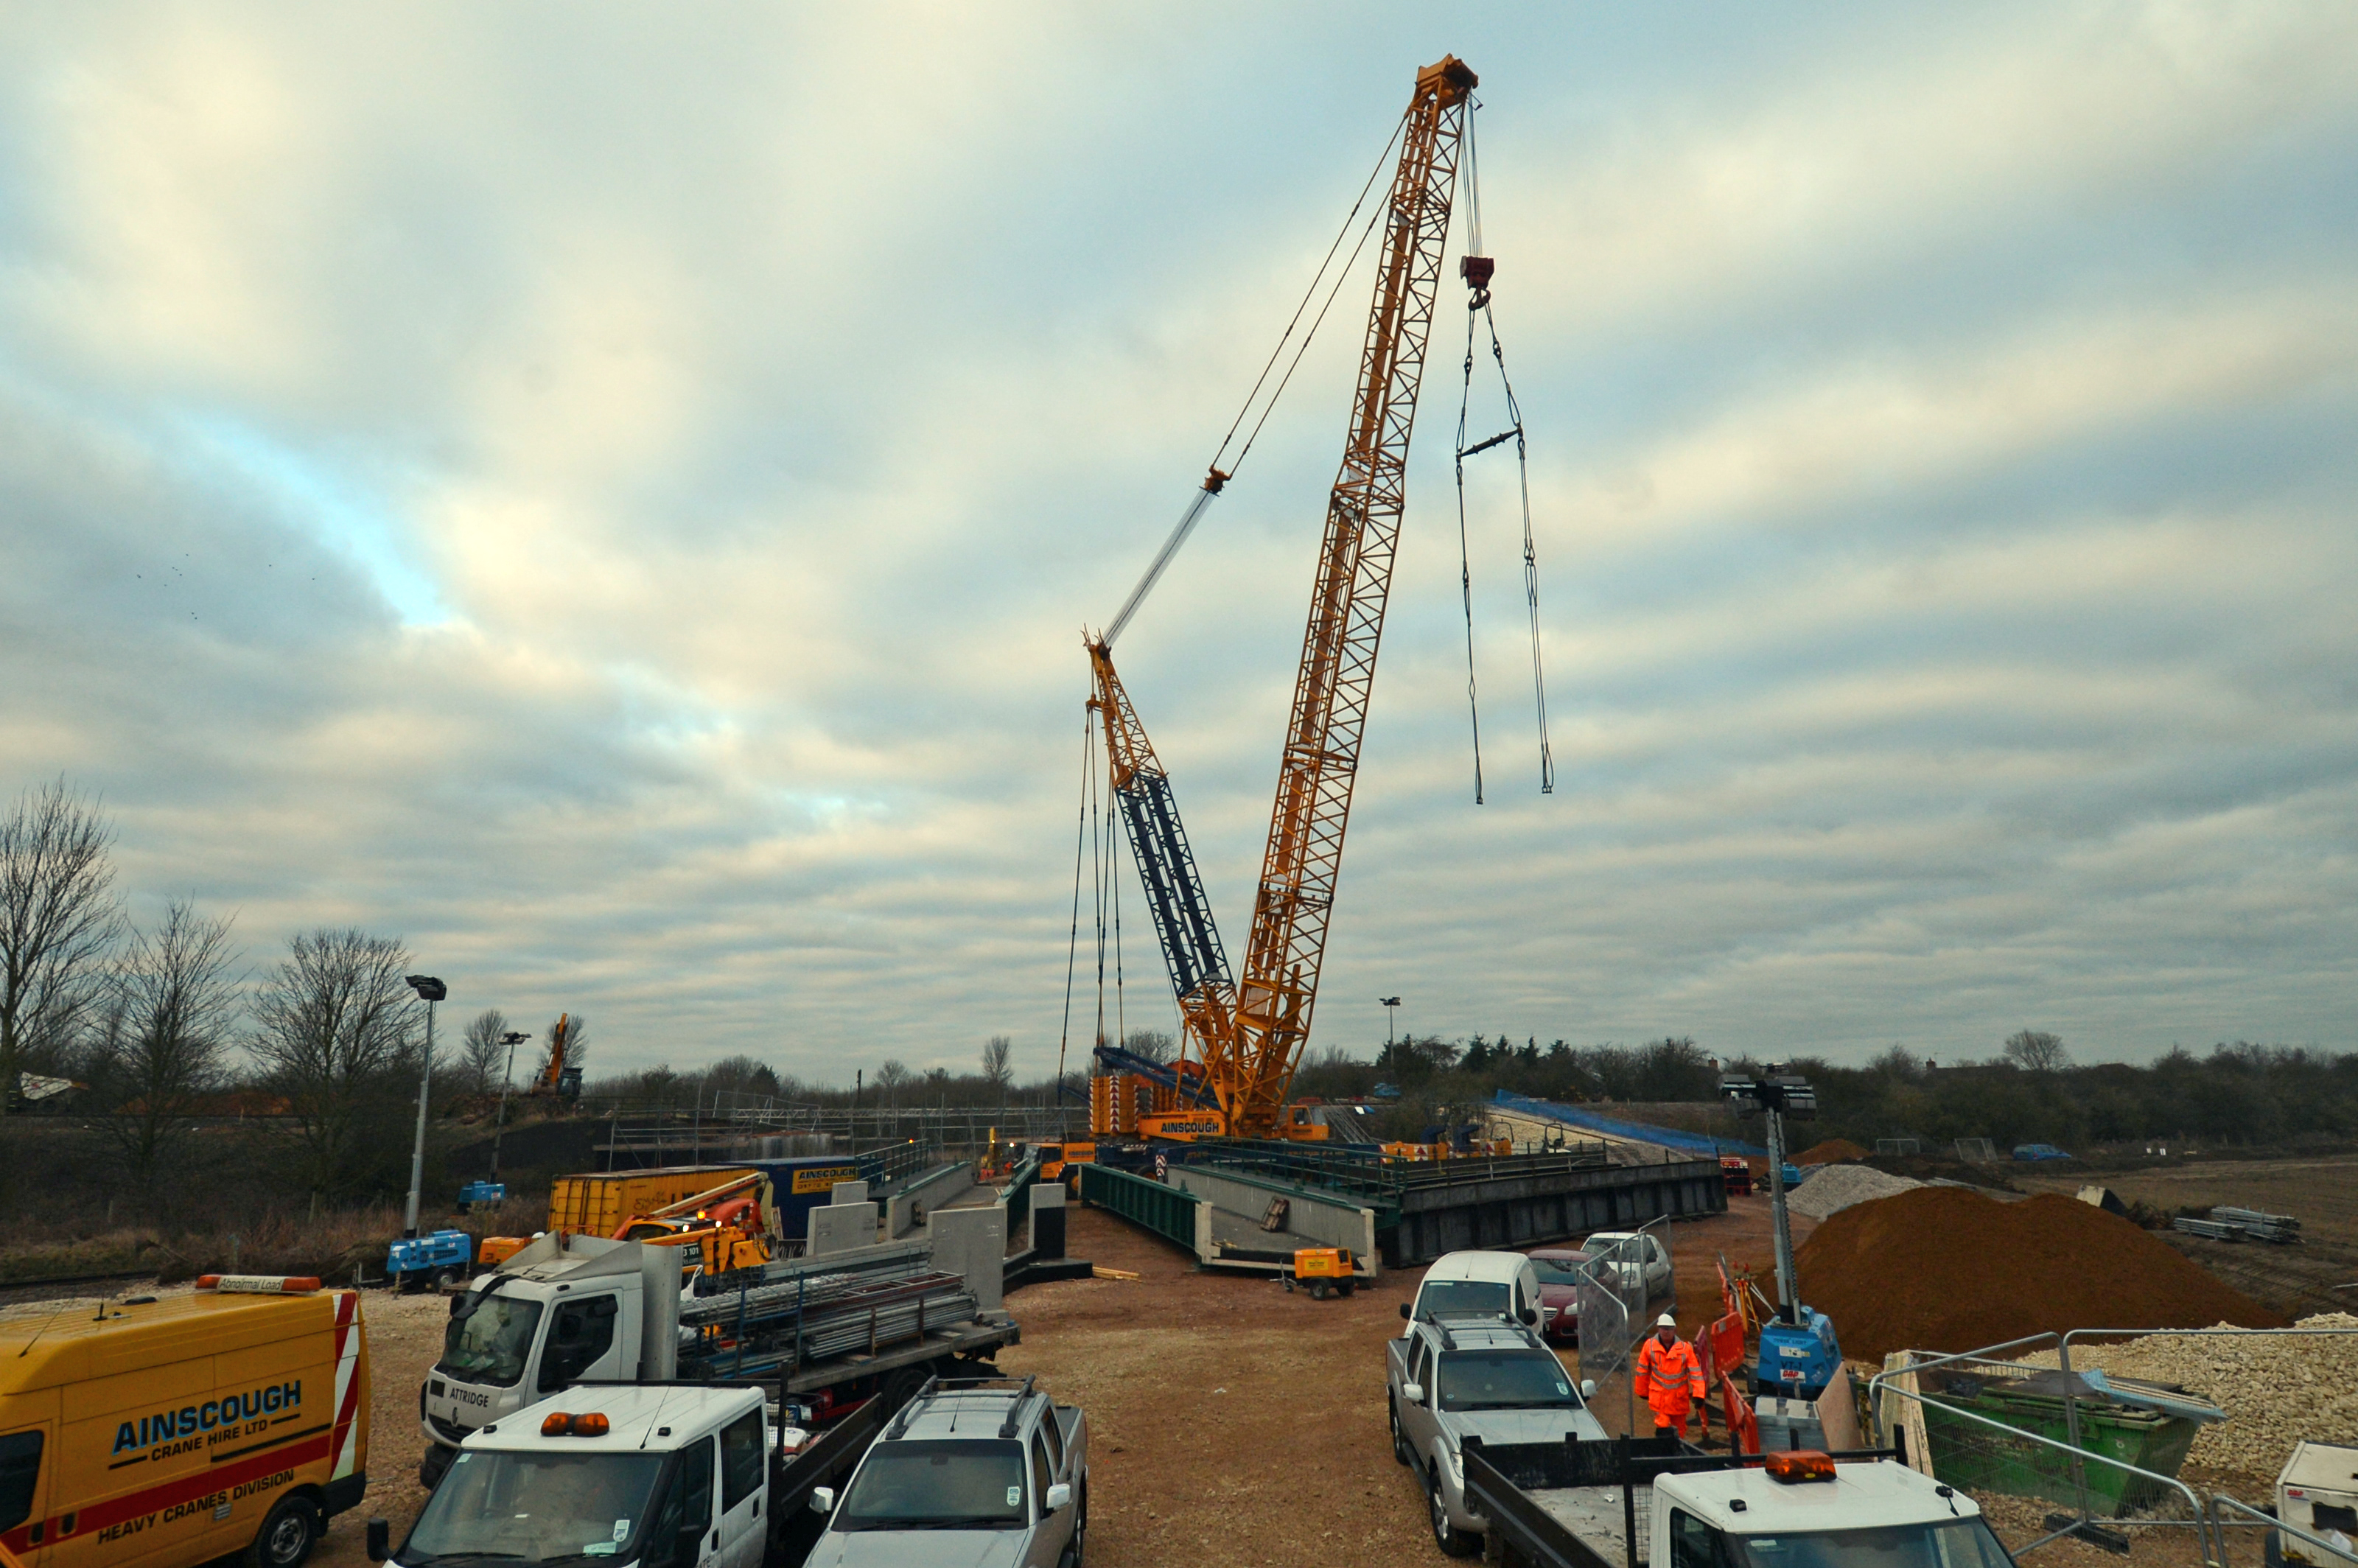 In March 2013 three different bridges on the Sleaford avoiding line were replaced during a 10 day blockade.  Here, a 1000 tonne crane rests after lifting out the old rail bridge over the railway line to Skegness.  In the foreground to the left of the old bridge you can see the two sections of the new bridge ready to go in.